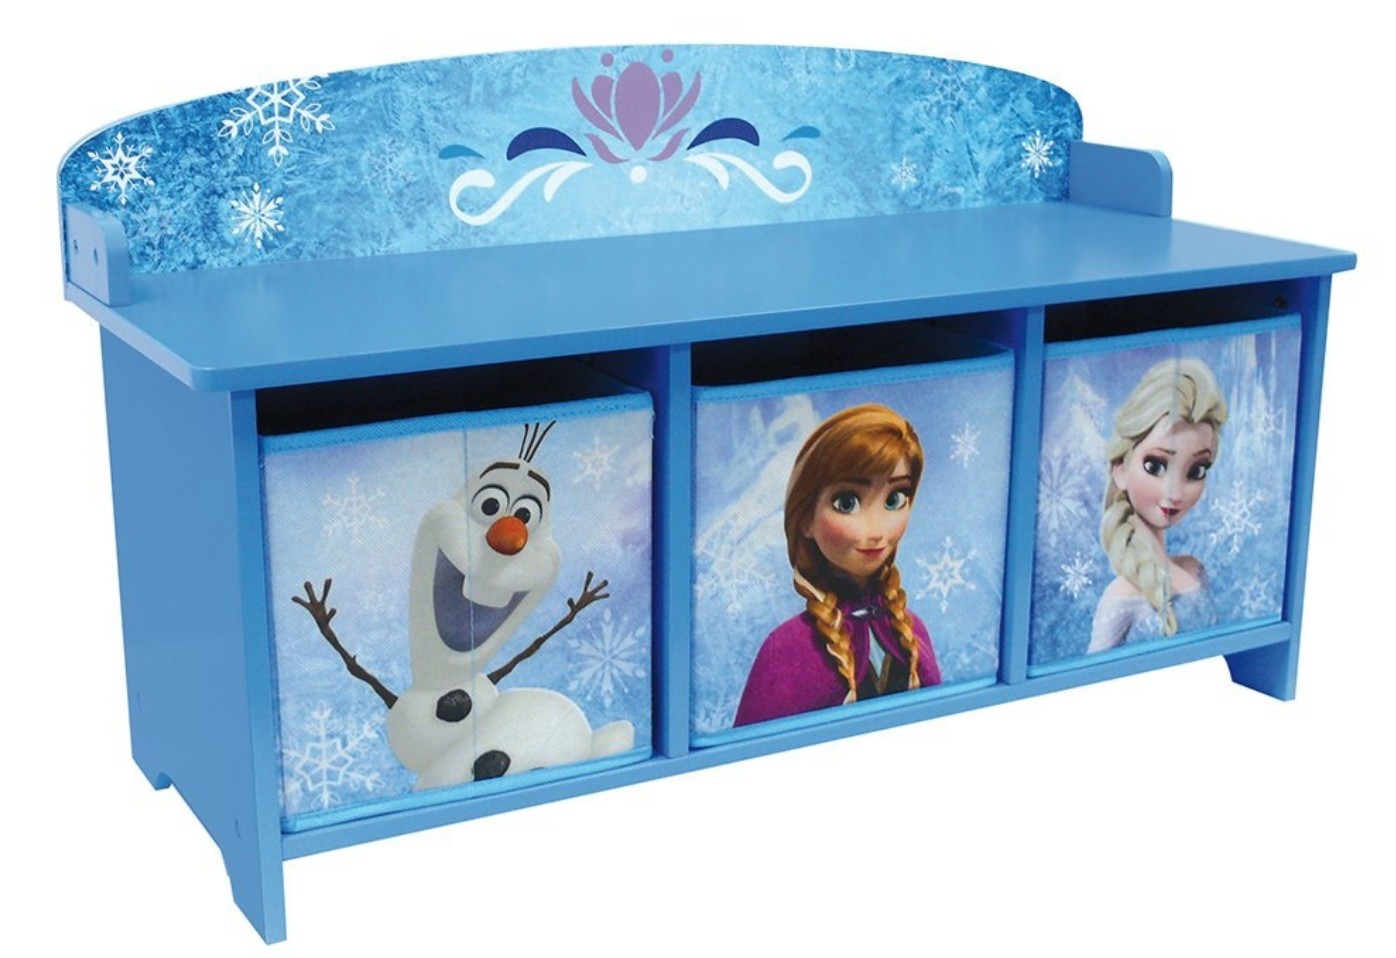 banc avec bacs de rangement reine des neiges. Black Bedroom Furniture Sets. Home Design Ideas